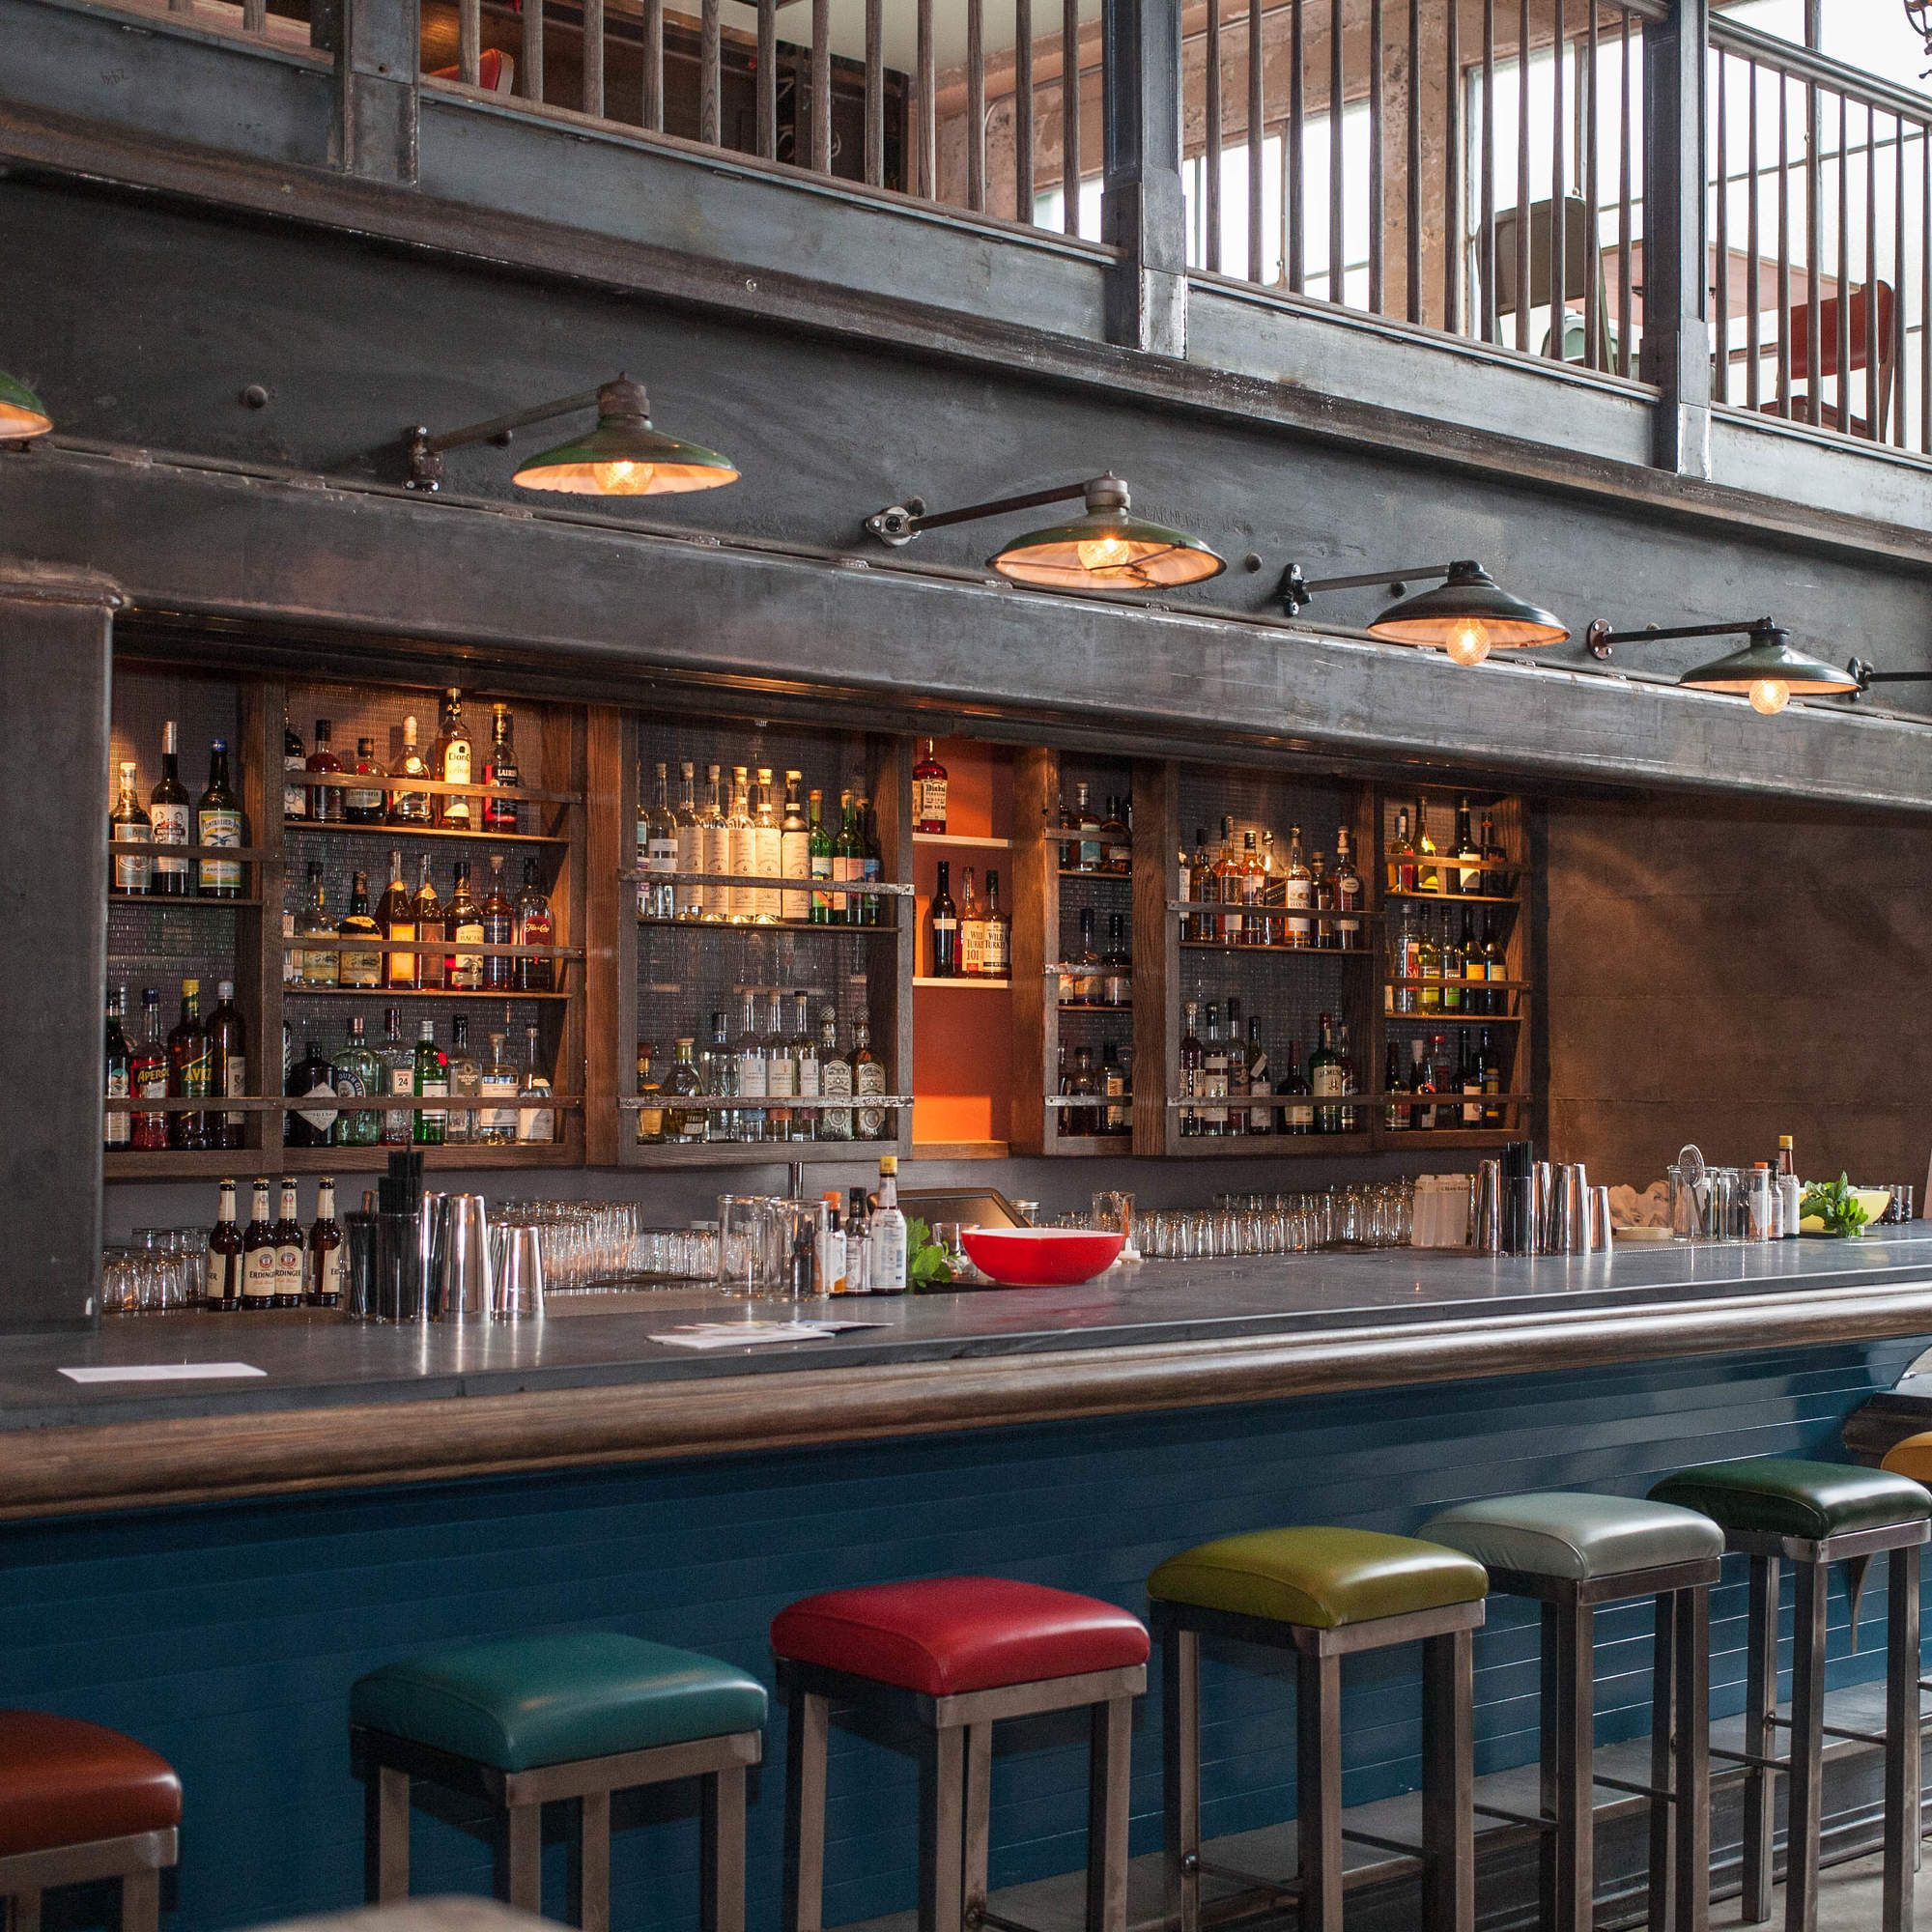 The 21 Best Cocktail Bars in America | San francisco bars ...